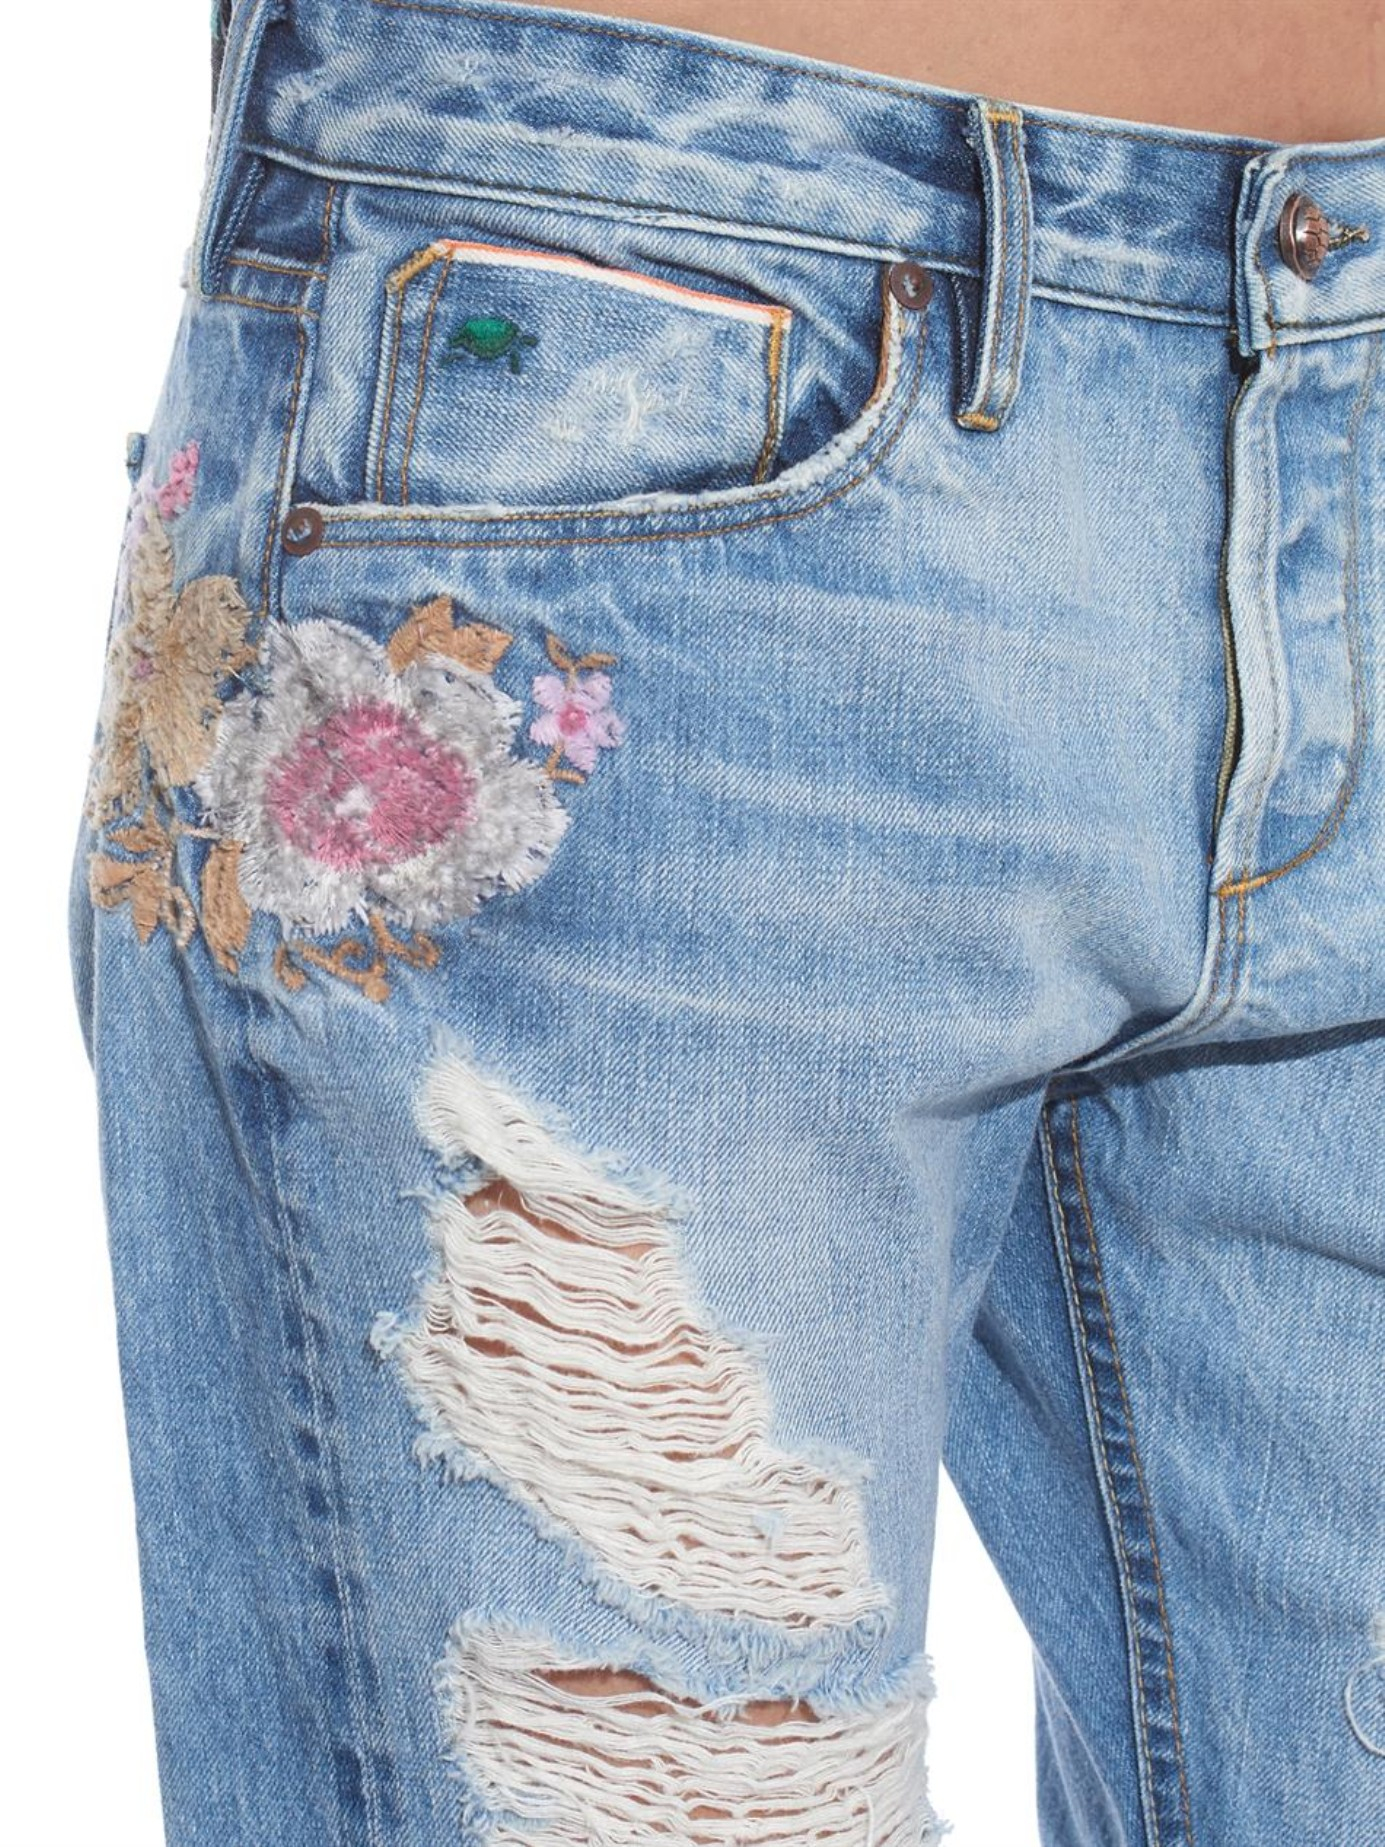 Tortoise savanna floral embroidered ripped jeans in blue